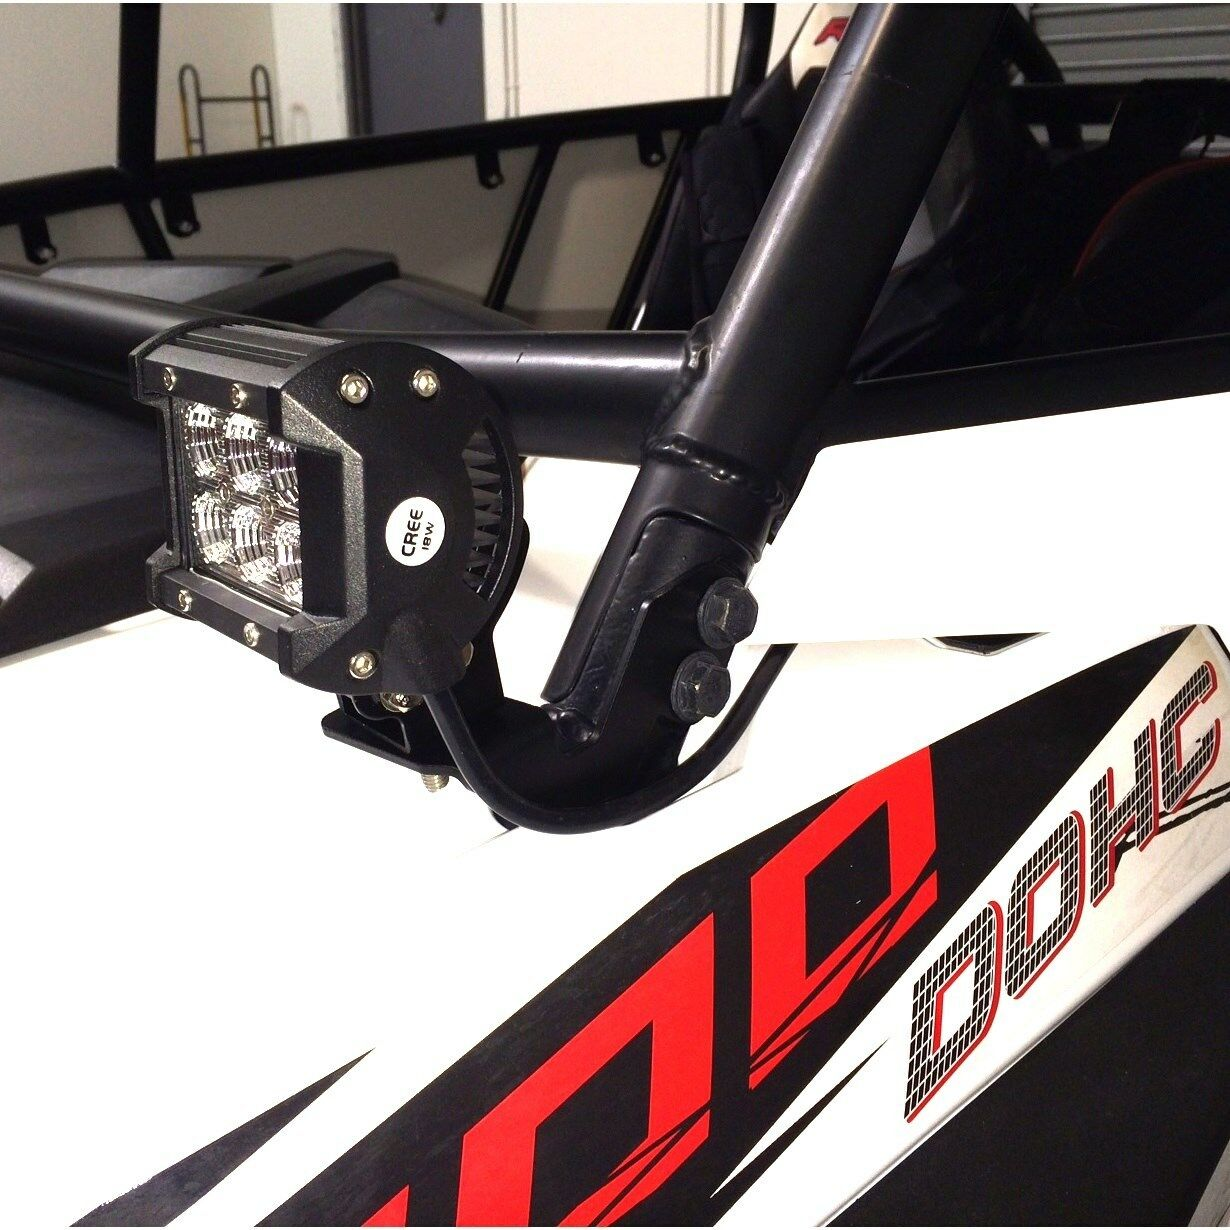 Led Work Light Mount Bracket Utv Offroad 2014 2015 Polaris